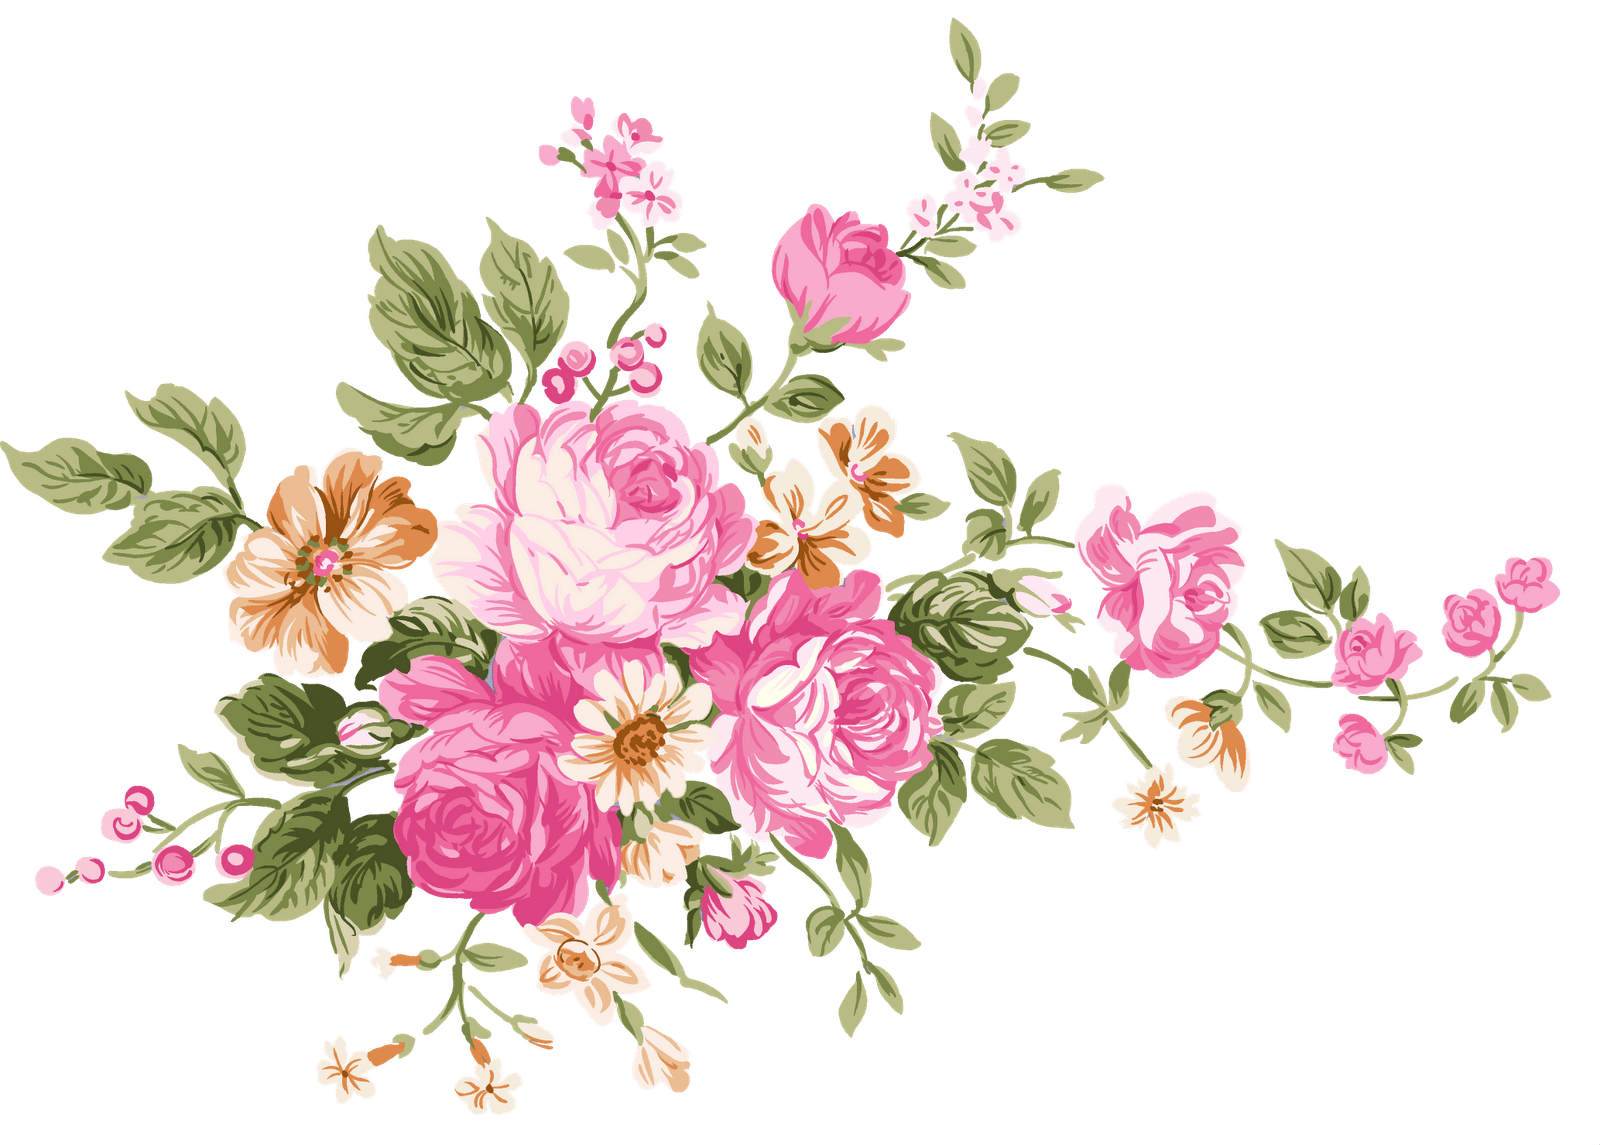 Vintage bouquet of stickpng. Flowers transparent png clip art library library